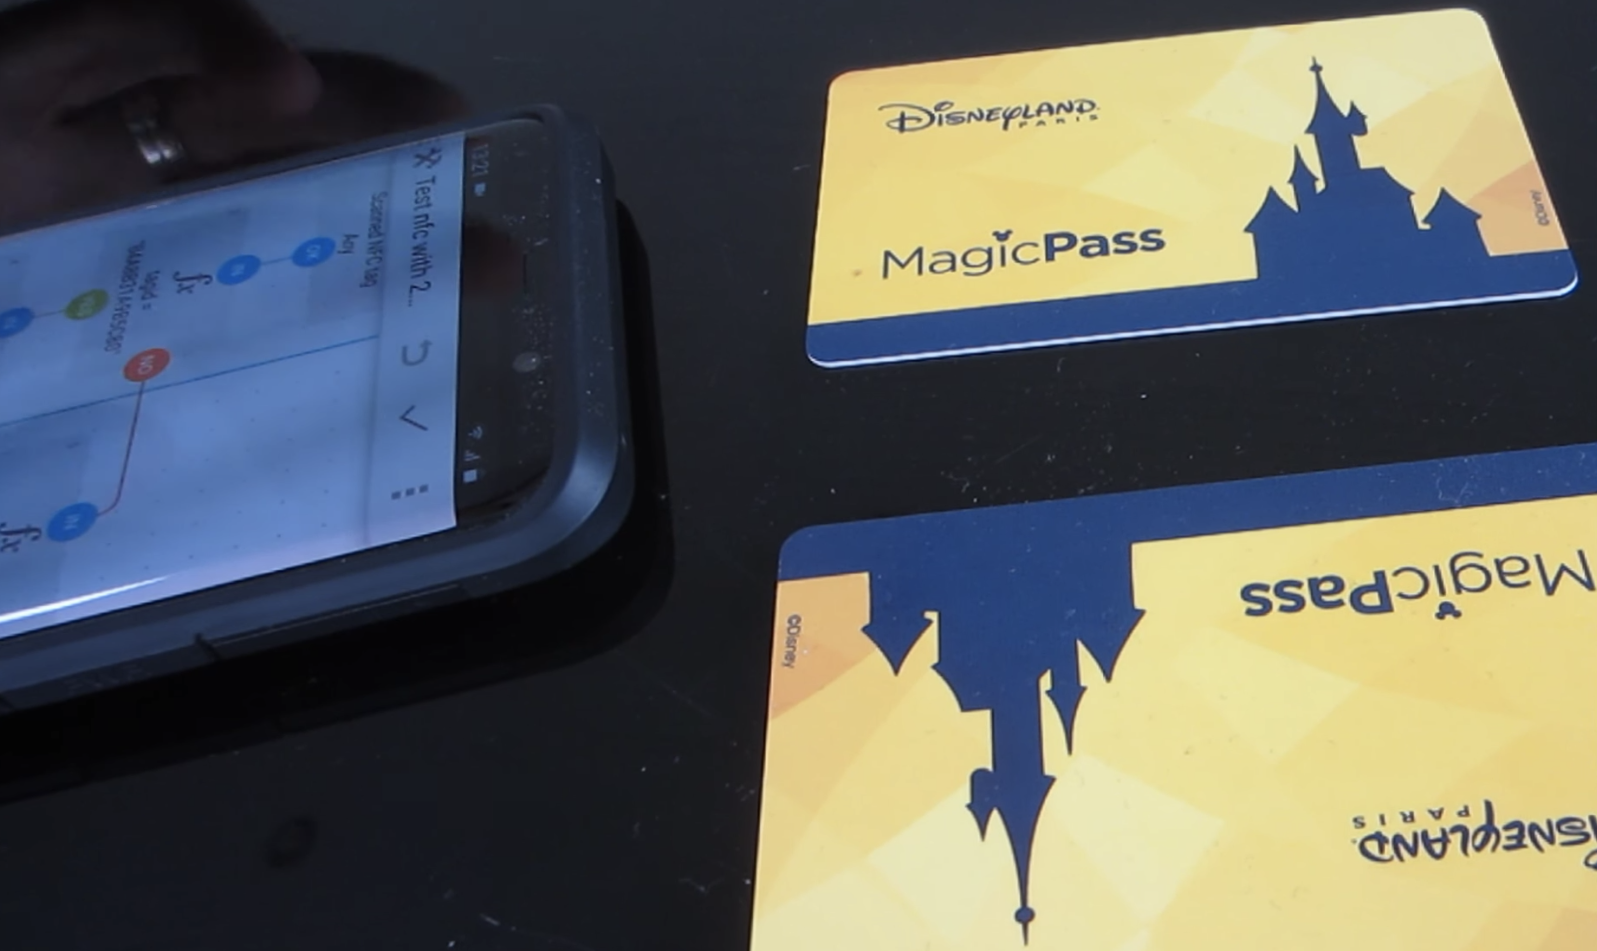 Upcycle Those Old Disney Park Tickets as Smartphone NFC Task